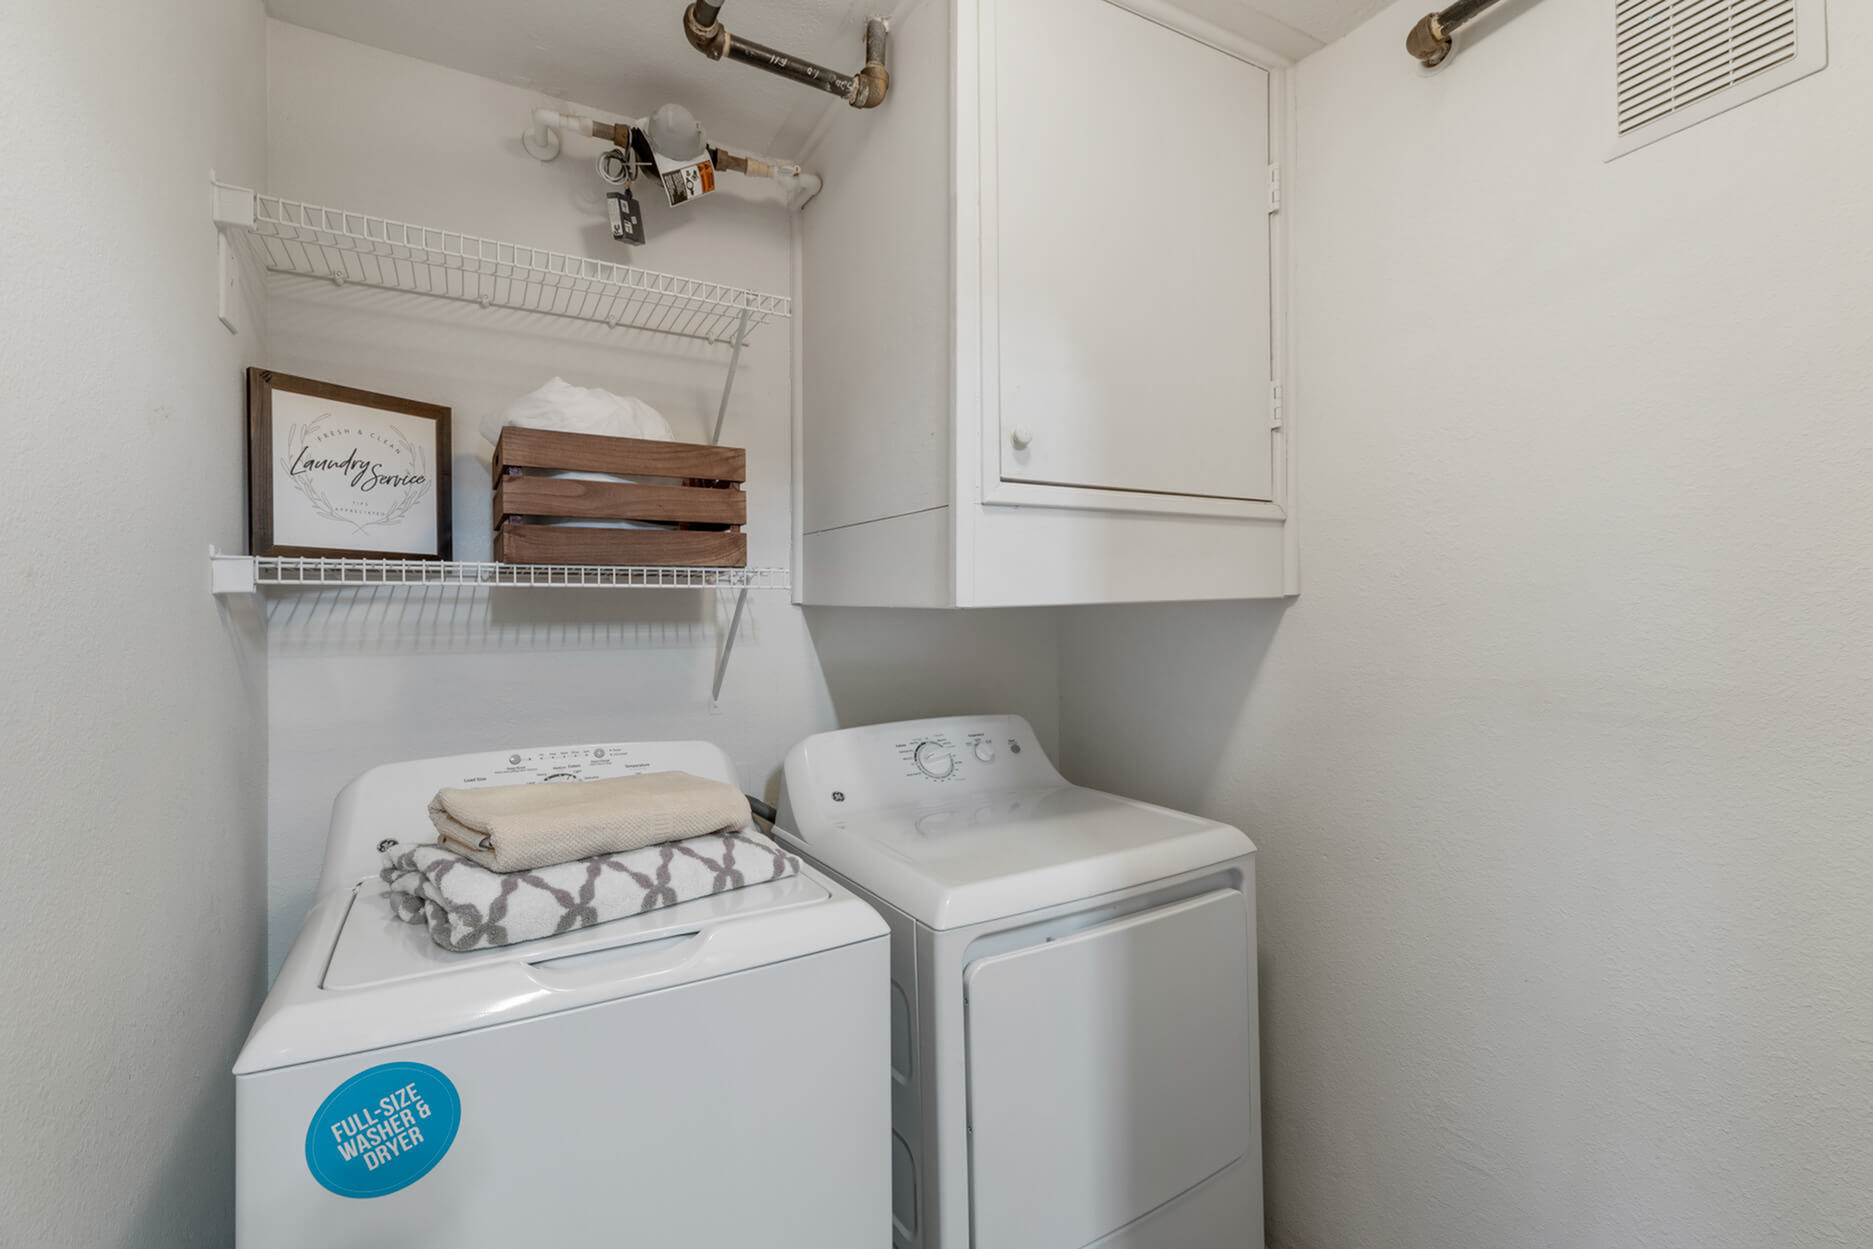 In-home Laundry  | Apartment Homes for rent in Denton, TX | Castlerock at Denton